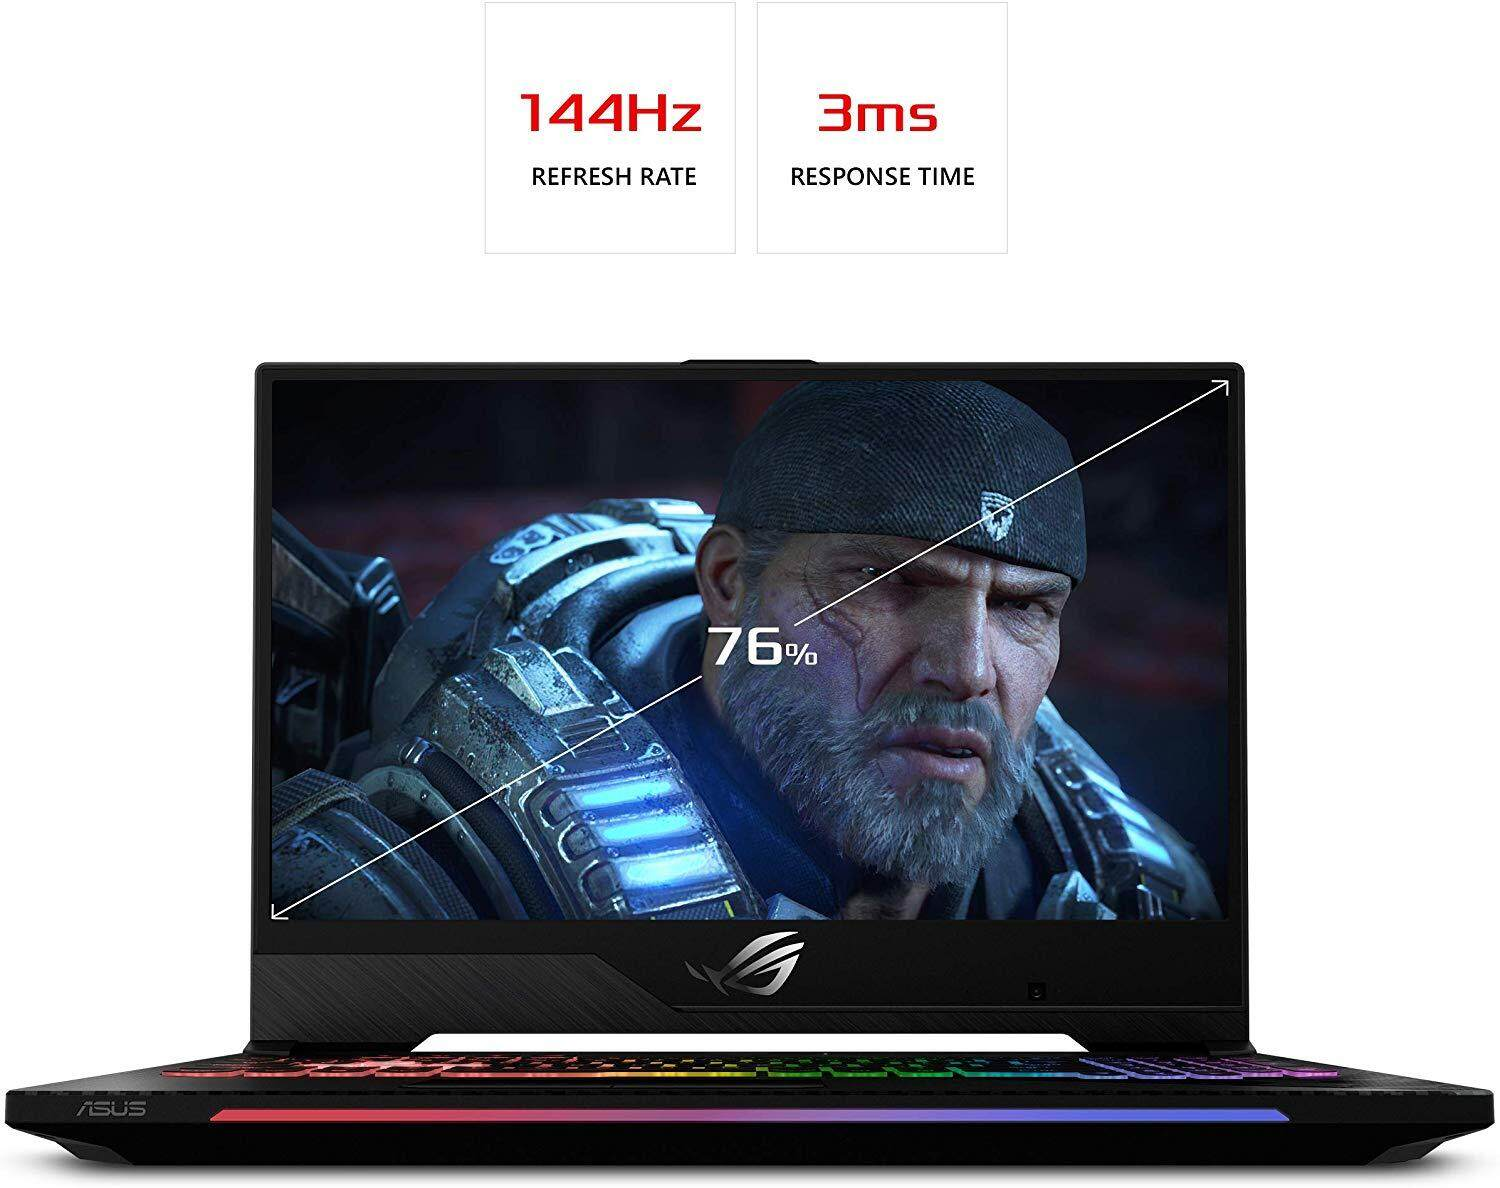 "Asus ROG Strix Scar II Gaming Laptop, 15.6"" 144Hz IPS Type Full HD, NVIDIA GeForce RTX 2070, Intel Core i7-8750H, 16GB DDR4, 512GB PCIe Nvme SSD, RGB KB, Windows 10, Malaysia"